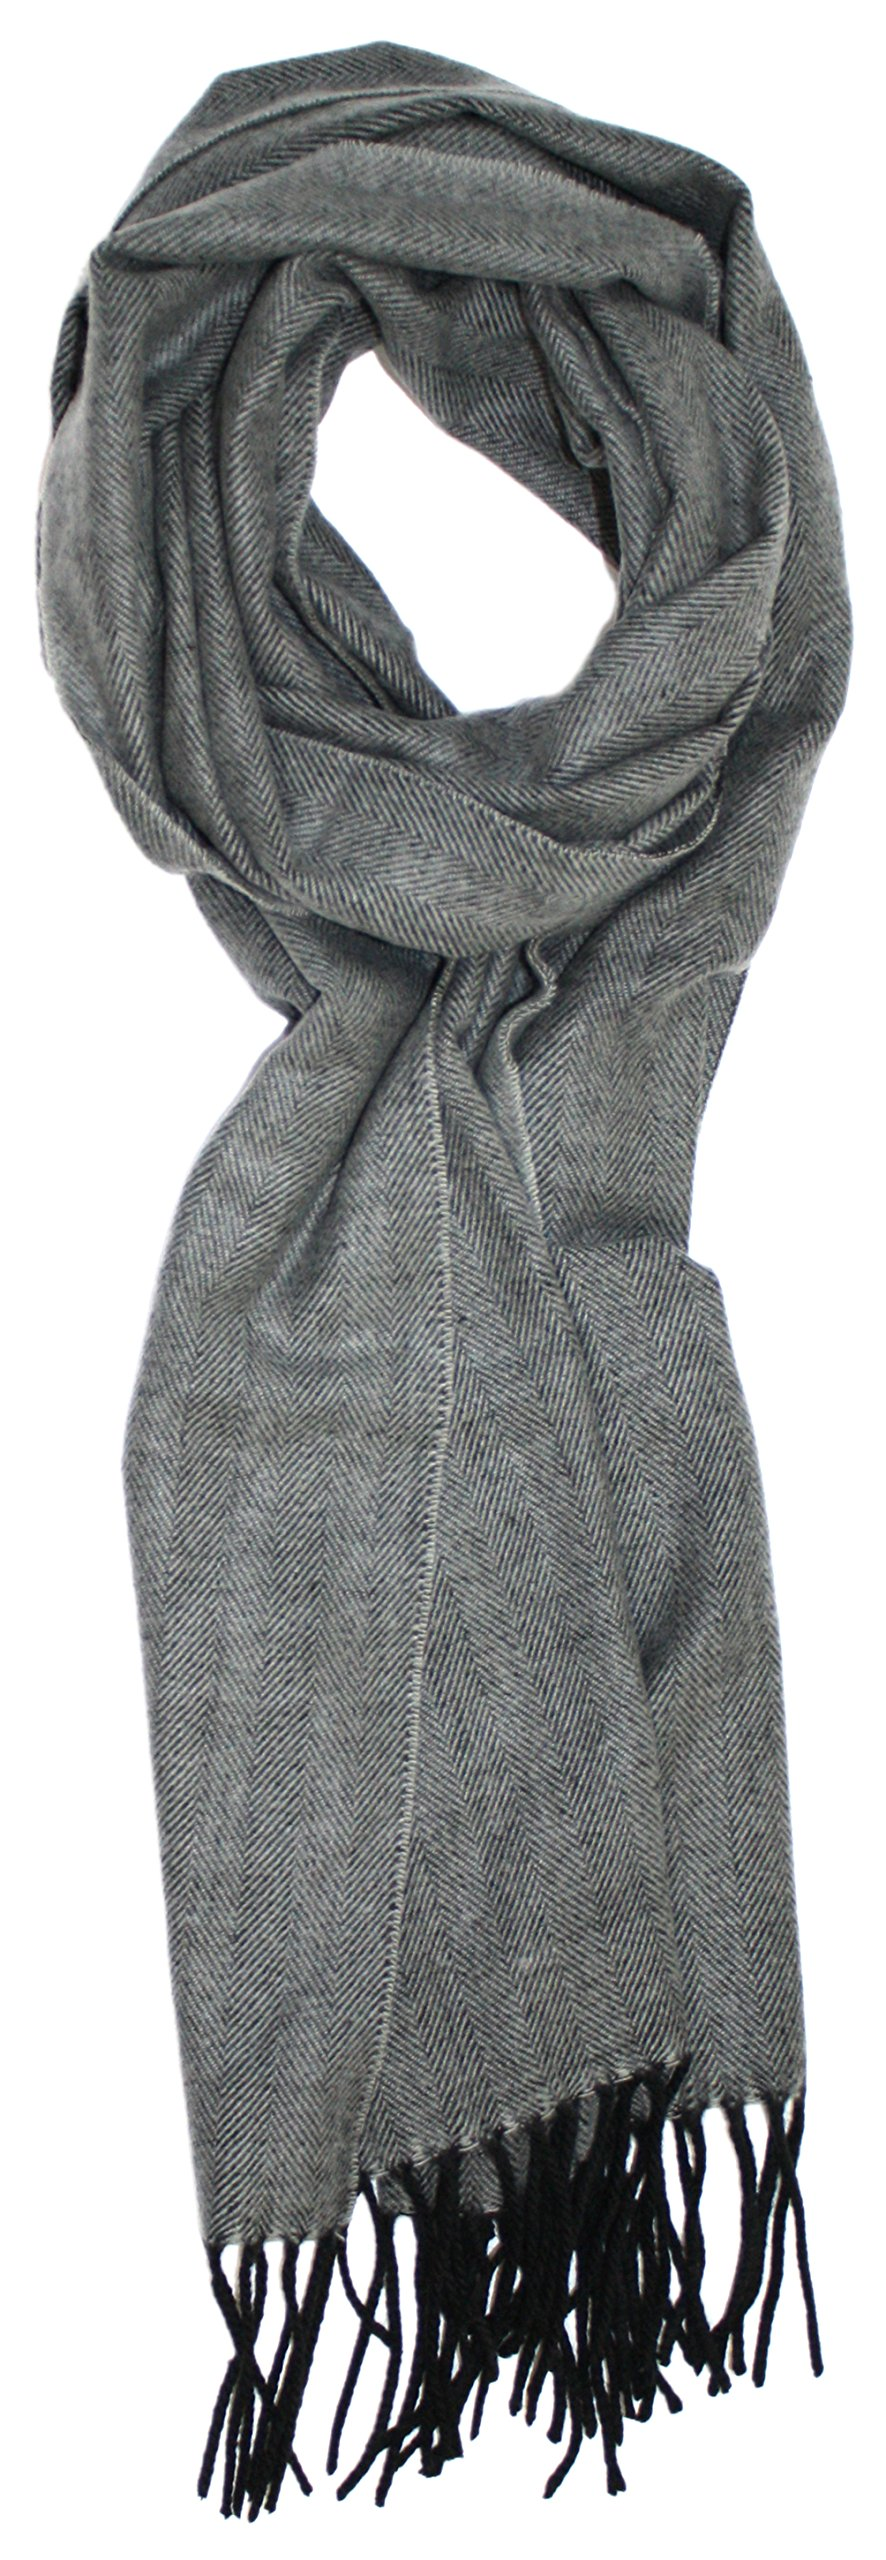 Ted and Jack - Timeless Cashmere Feel Herringbone Pattern Scarf in Charcoal Grey with Black Fringe